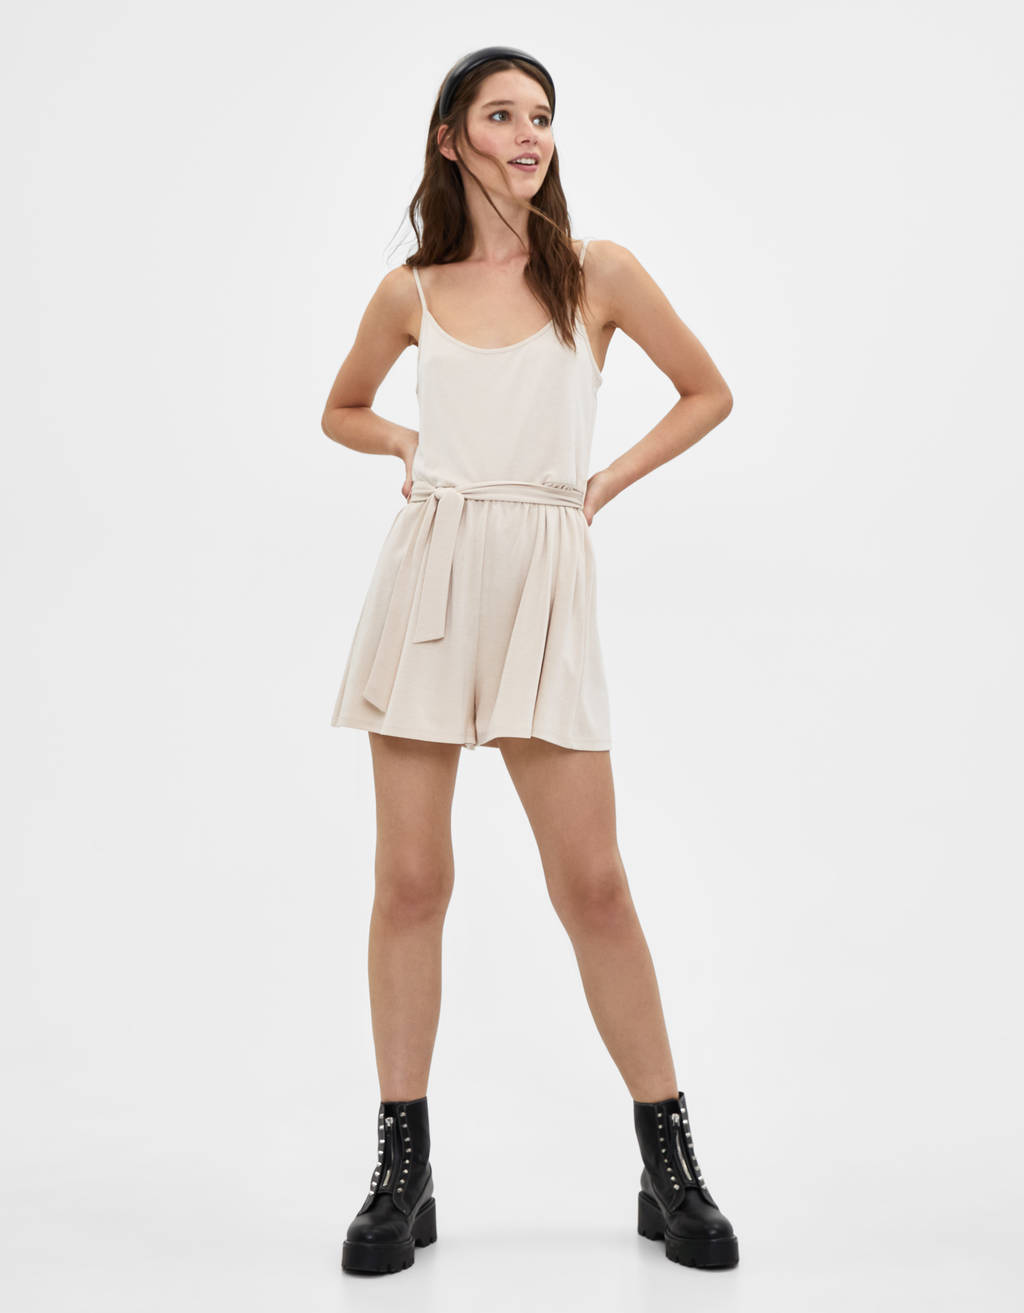 Playsuit with criss-cross back